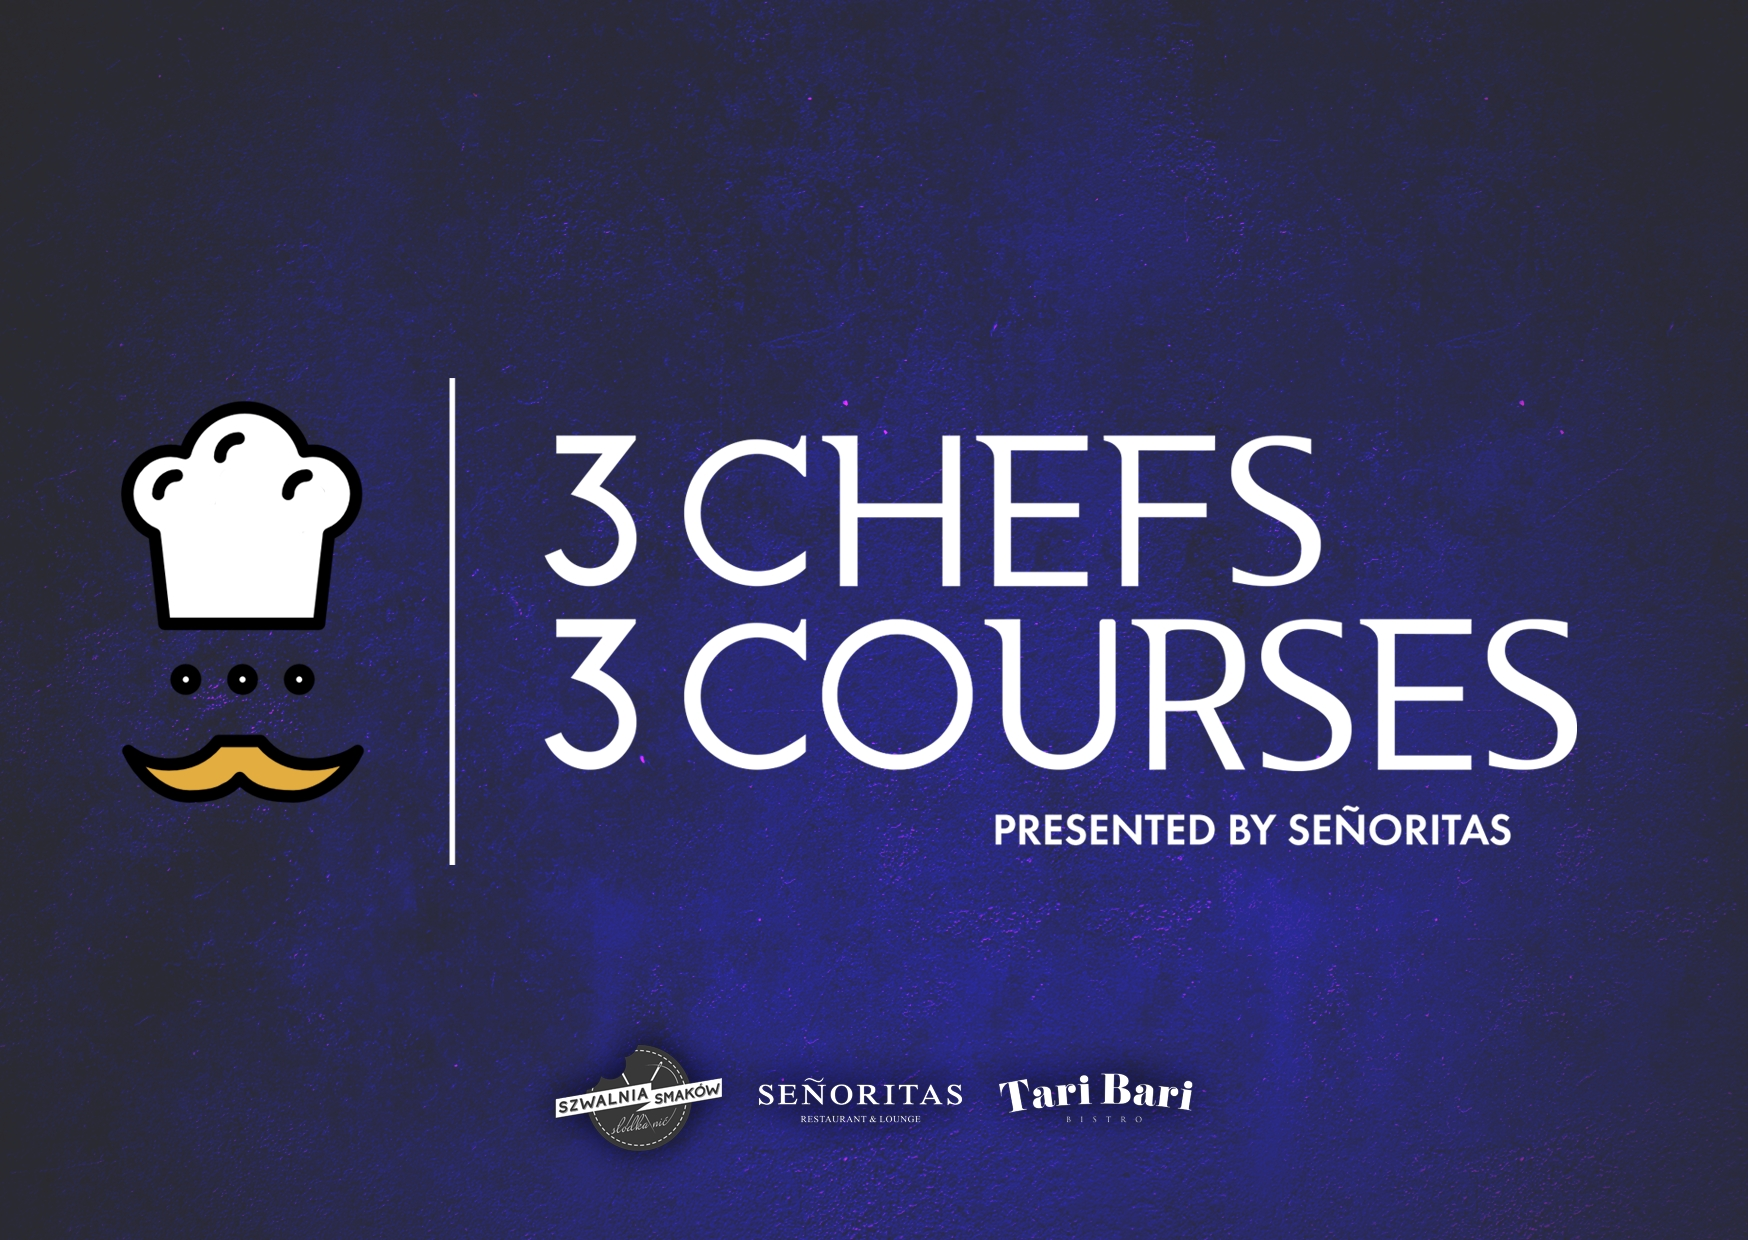 3 CHEFS 3 COURSES by SENORITAS